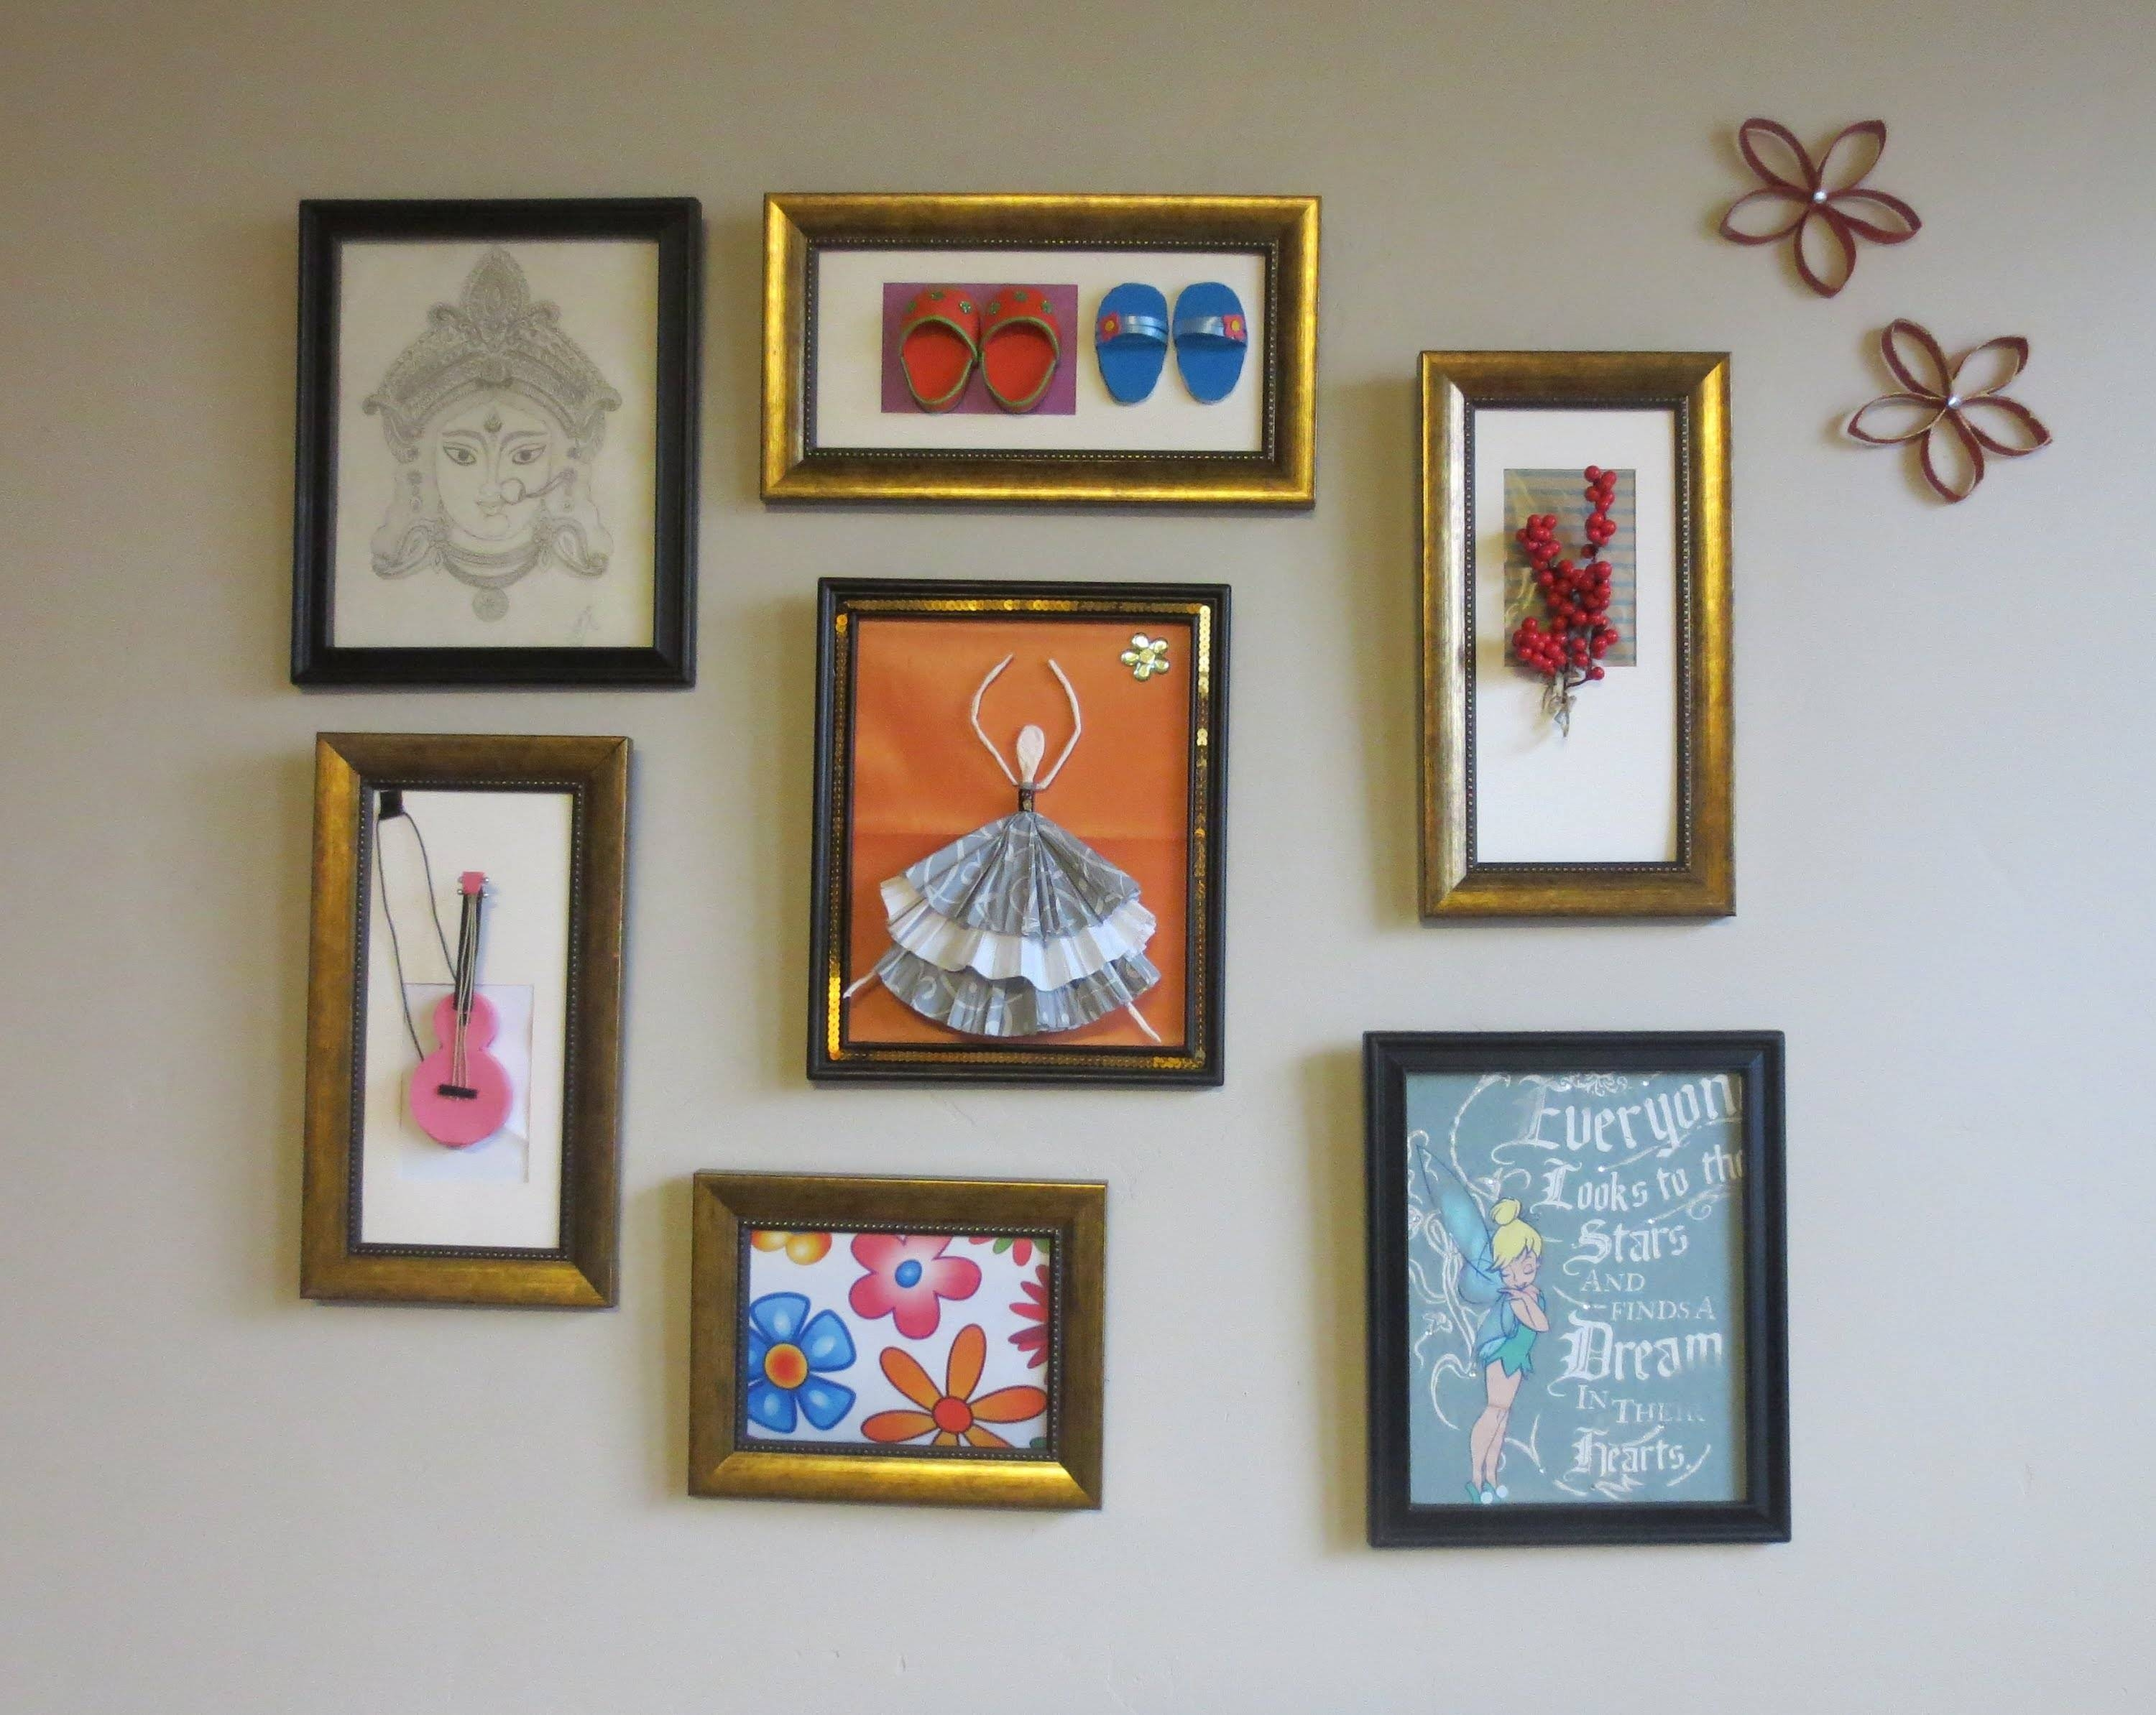 Home Decor : Tshirt Graphic & 3d Wall Art Picture Frame Collage Throughout Latest Wall Art Frames (View 6 of 20)